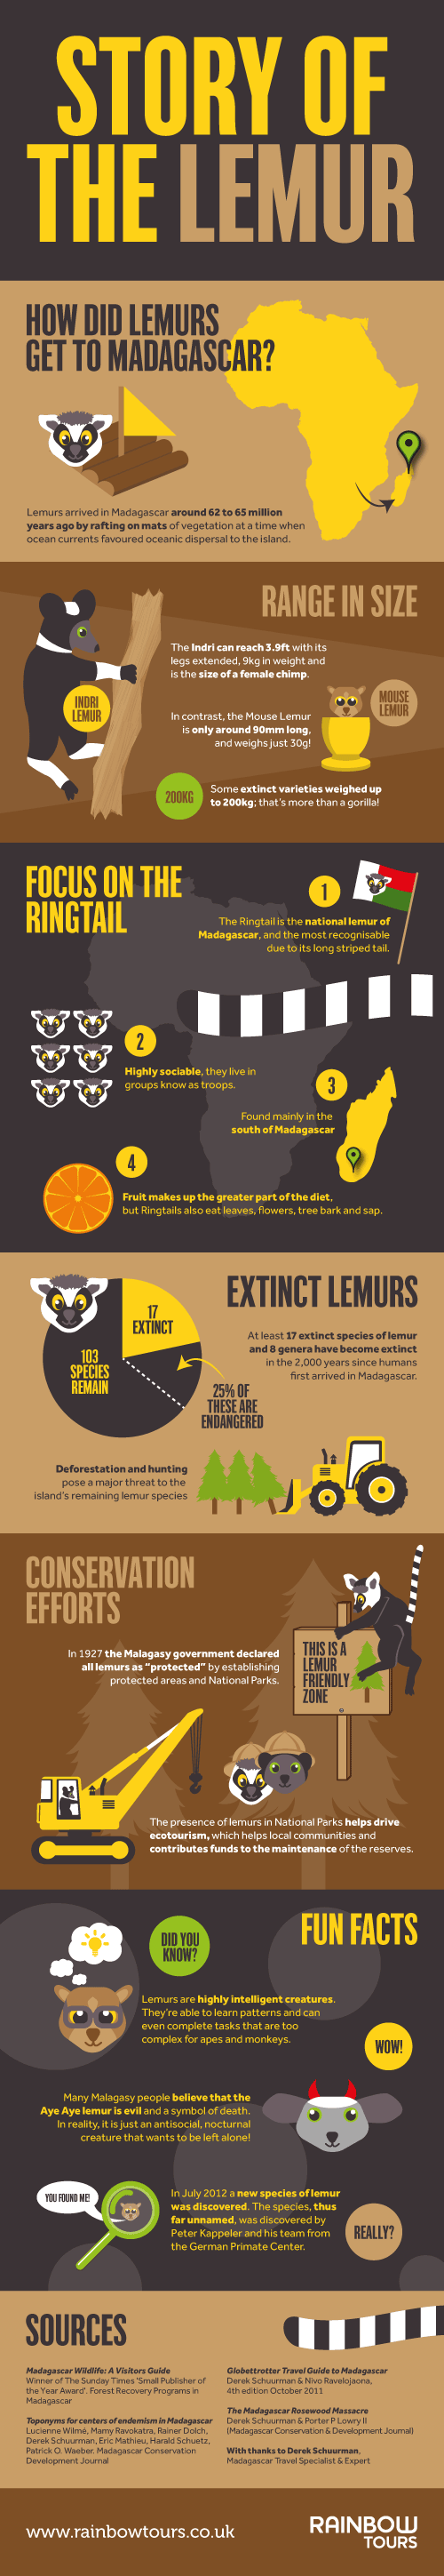 The Story of the Lemur